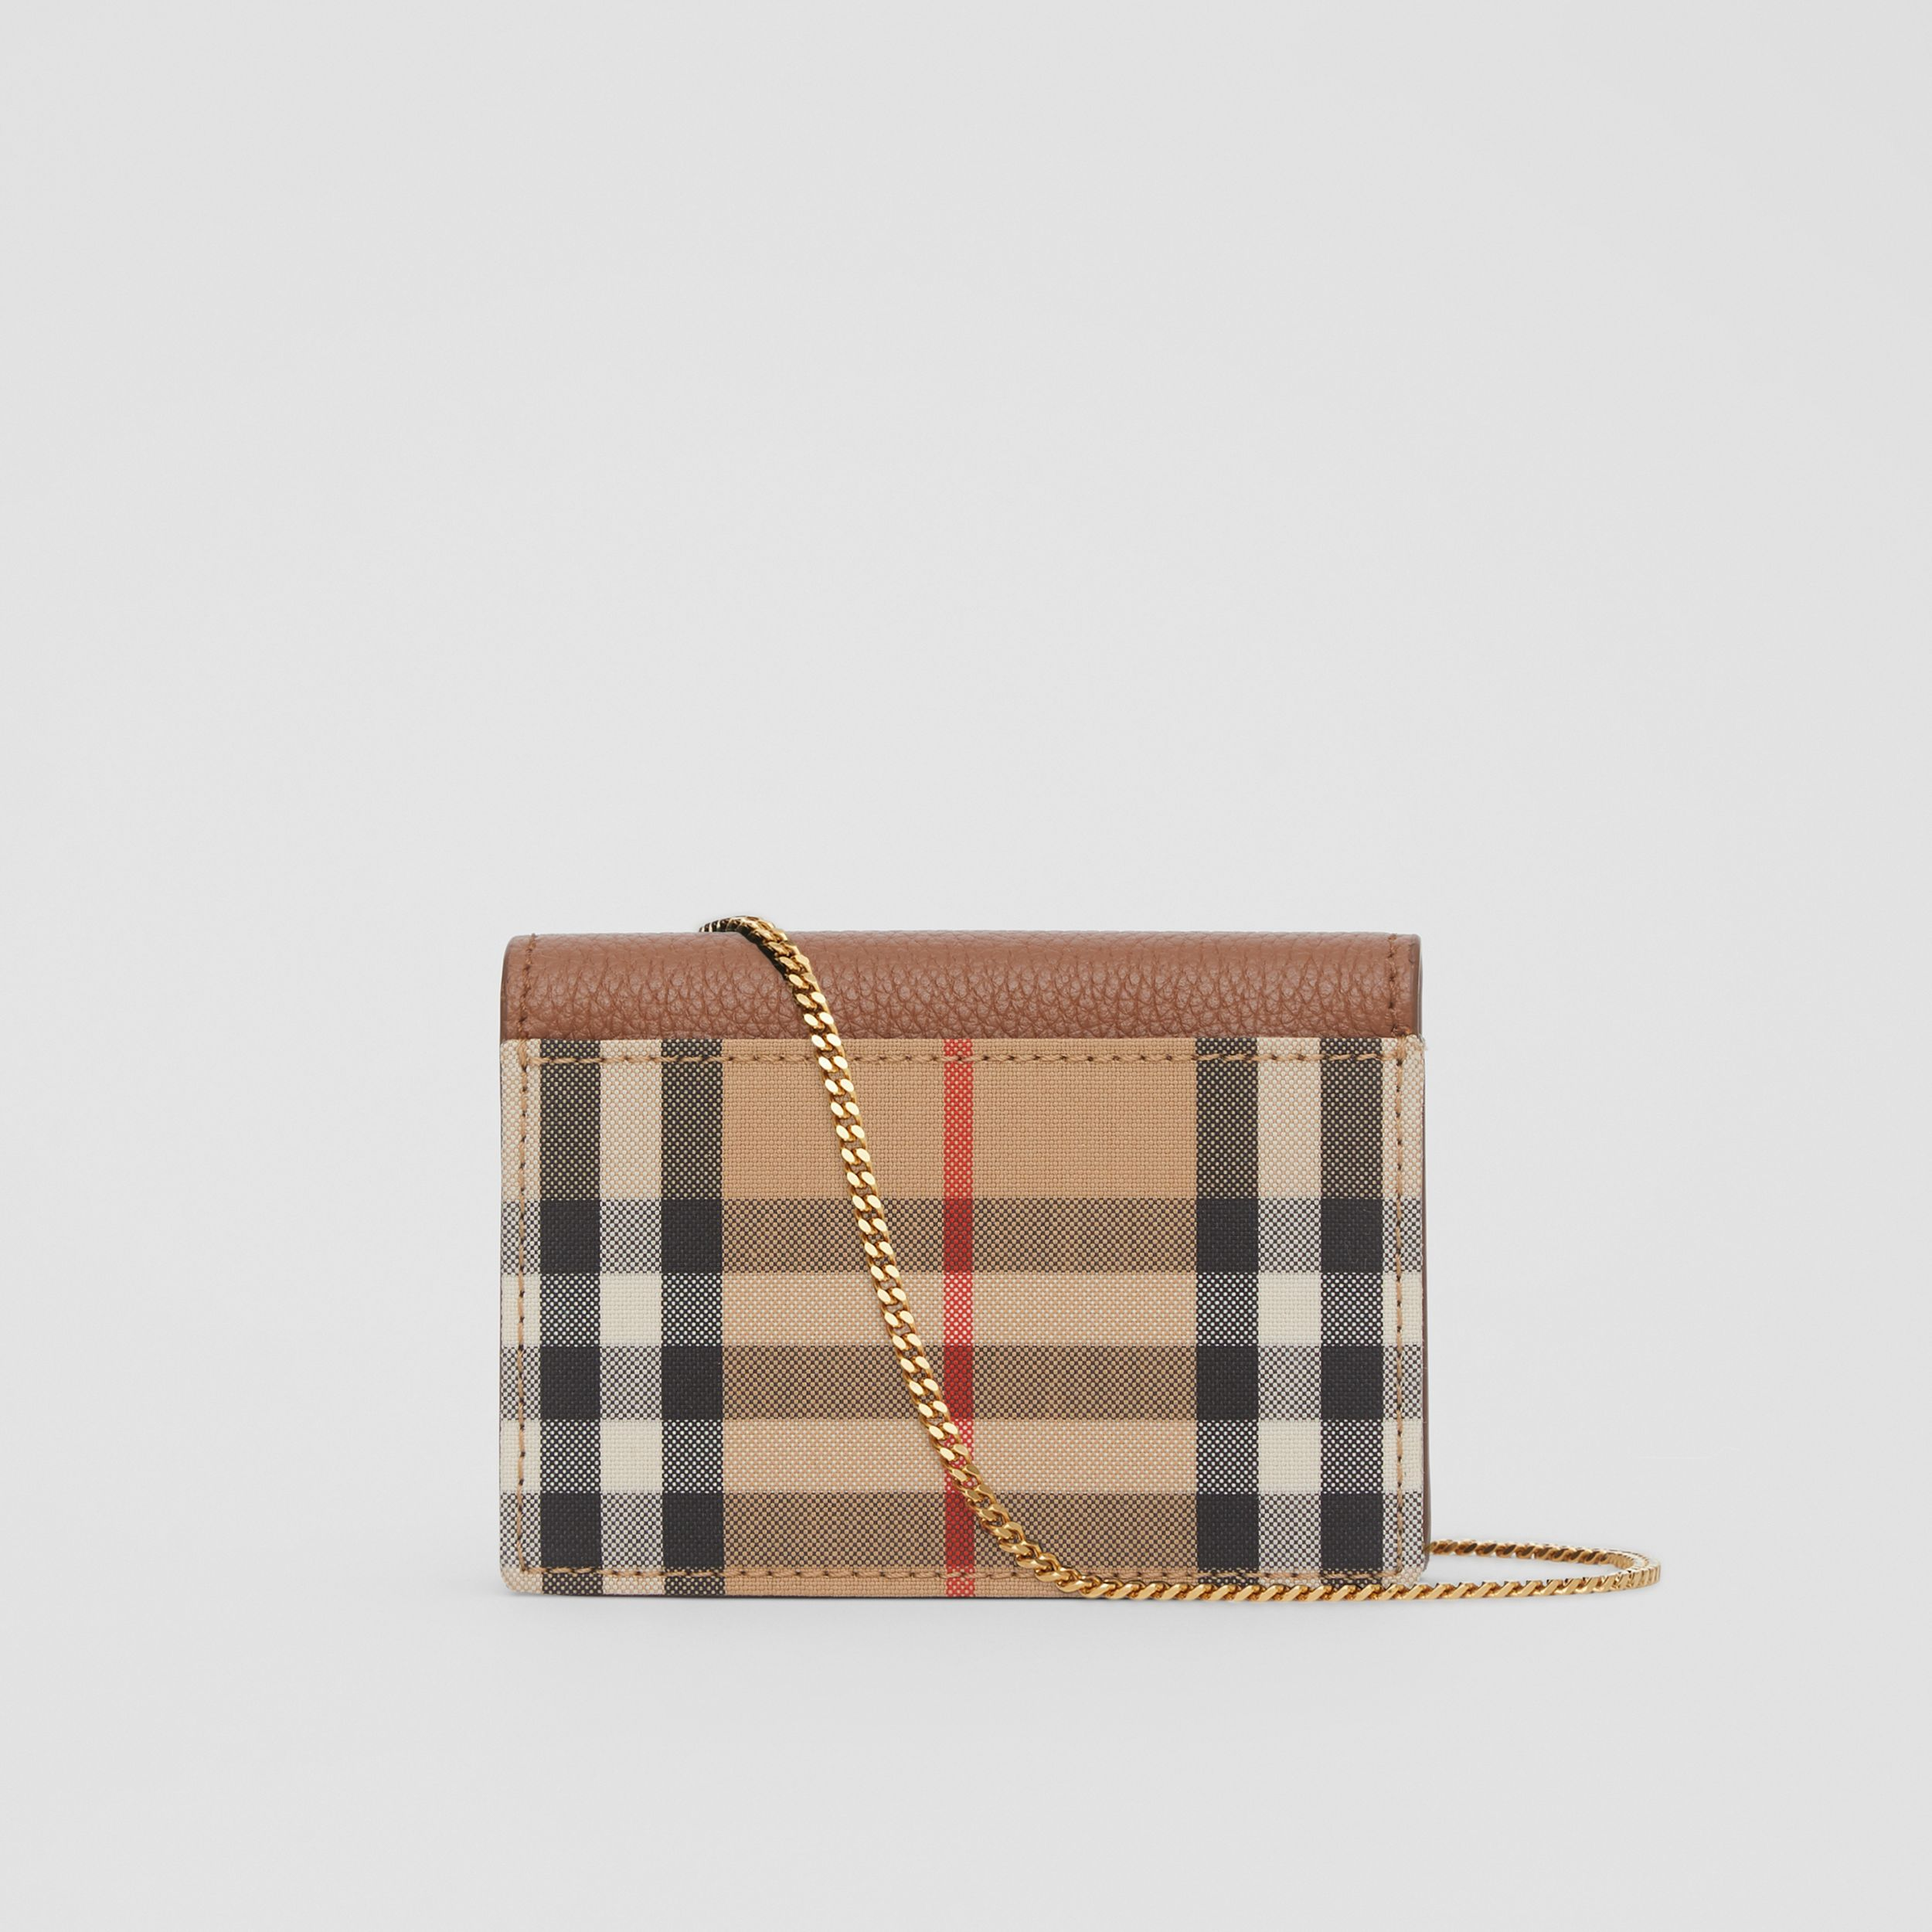 Vintage Check and Leather Card Case with Strap in Tan - Women | Burberry - 4